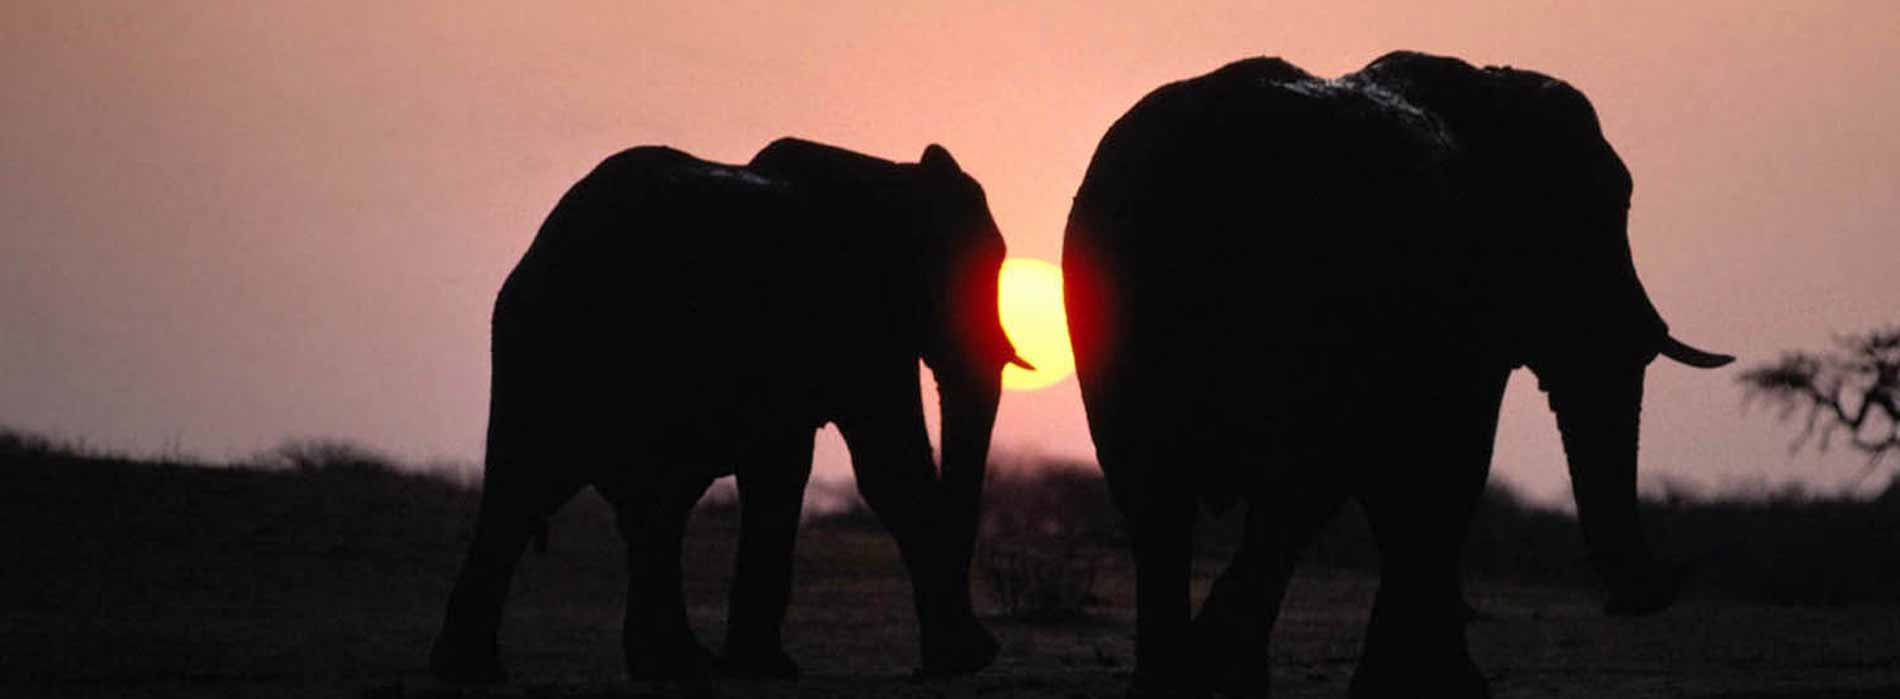 Elephants walking in the sun